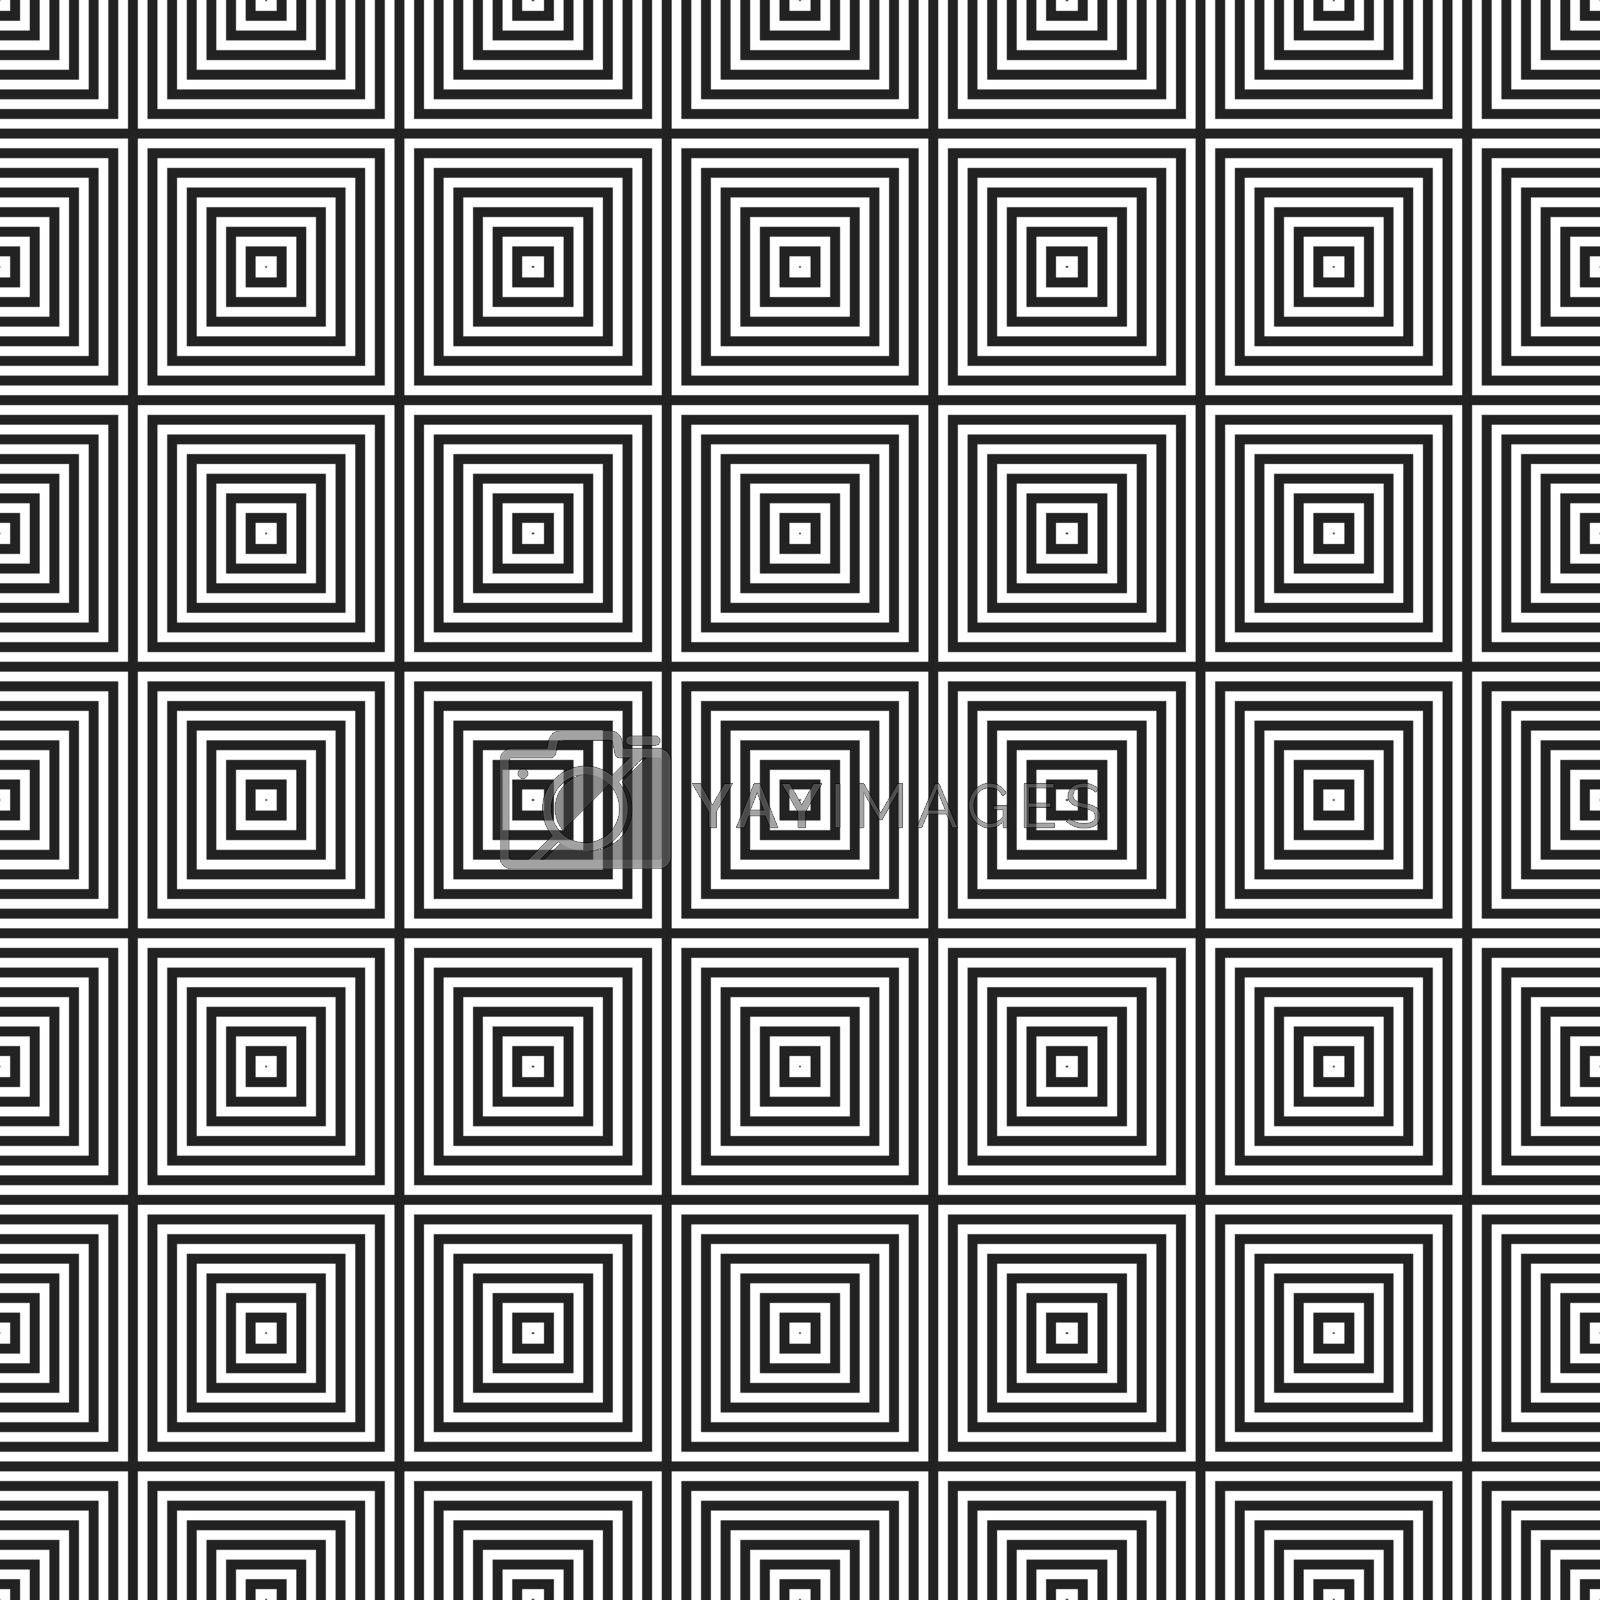 Black and white decorative asian seamless square pattern